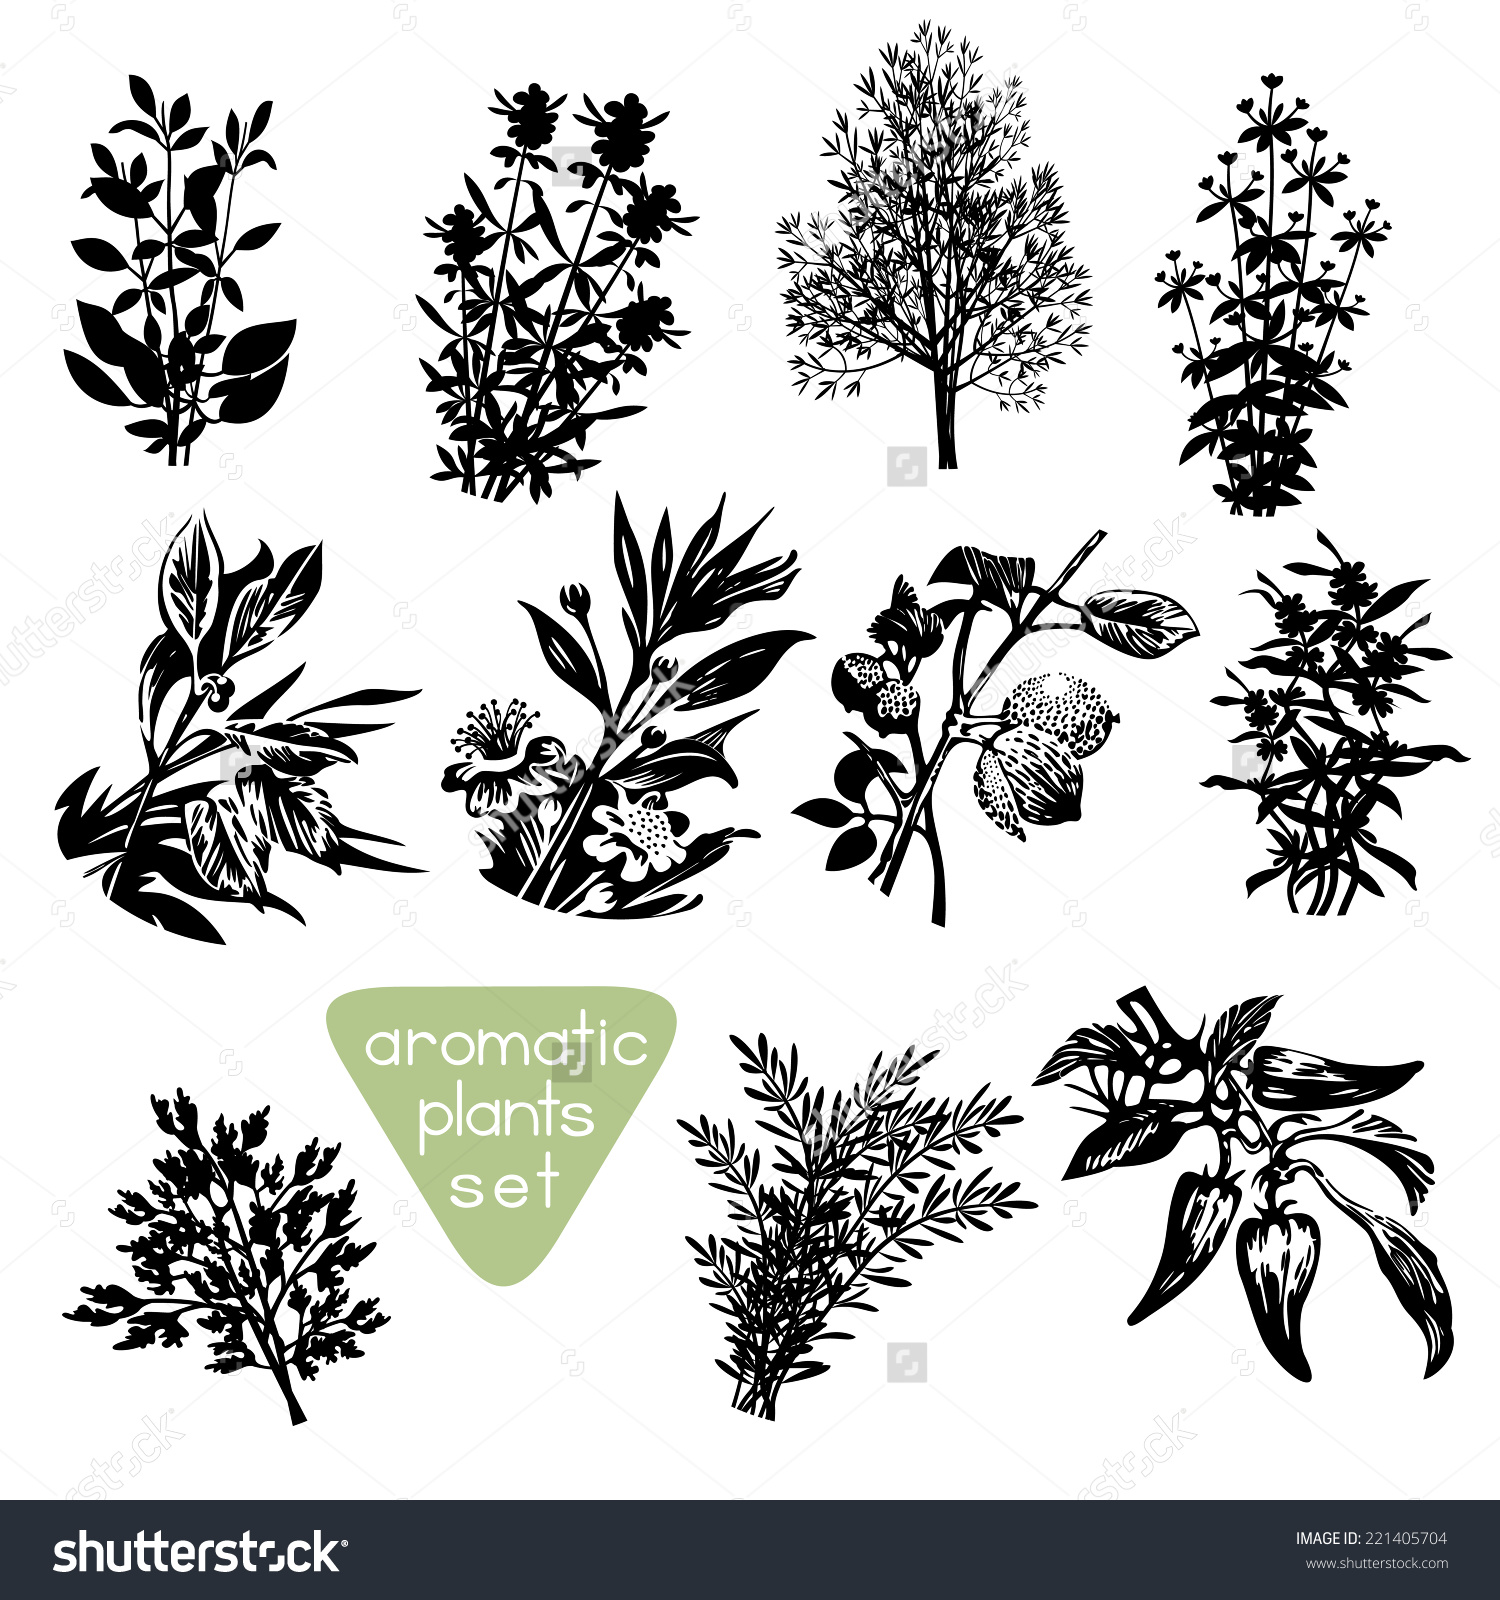 Aromatic Herbs Hand Drawn Silhouettes Set Stock Vector 221405704.